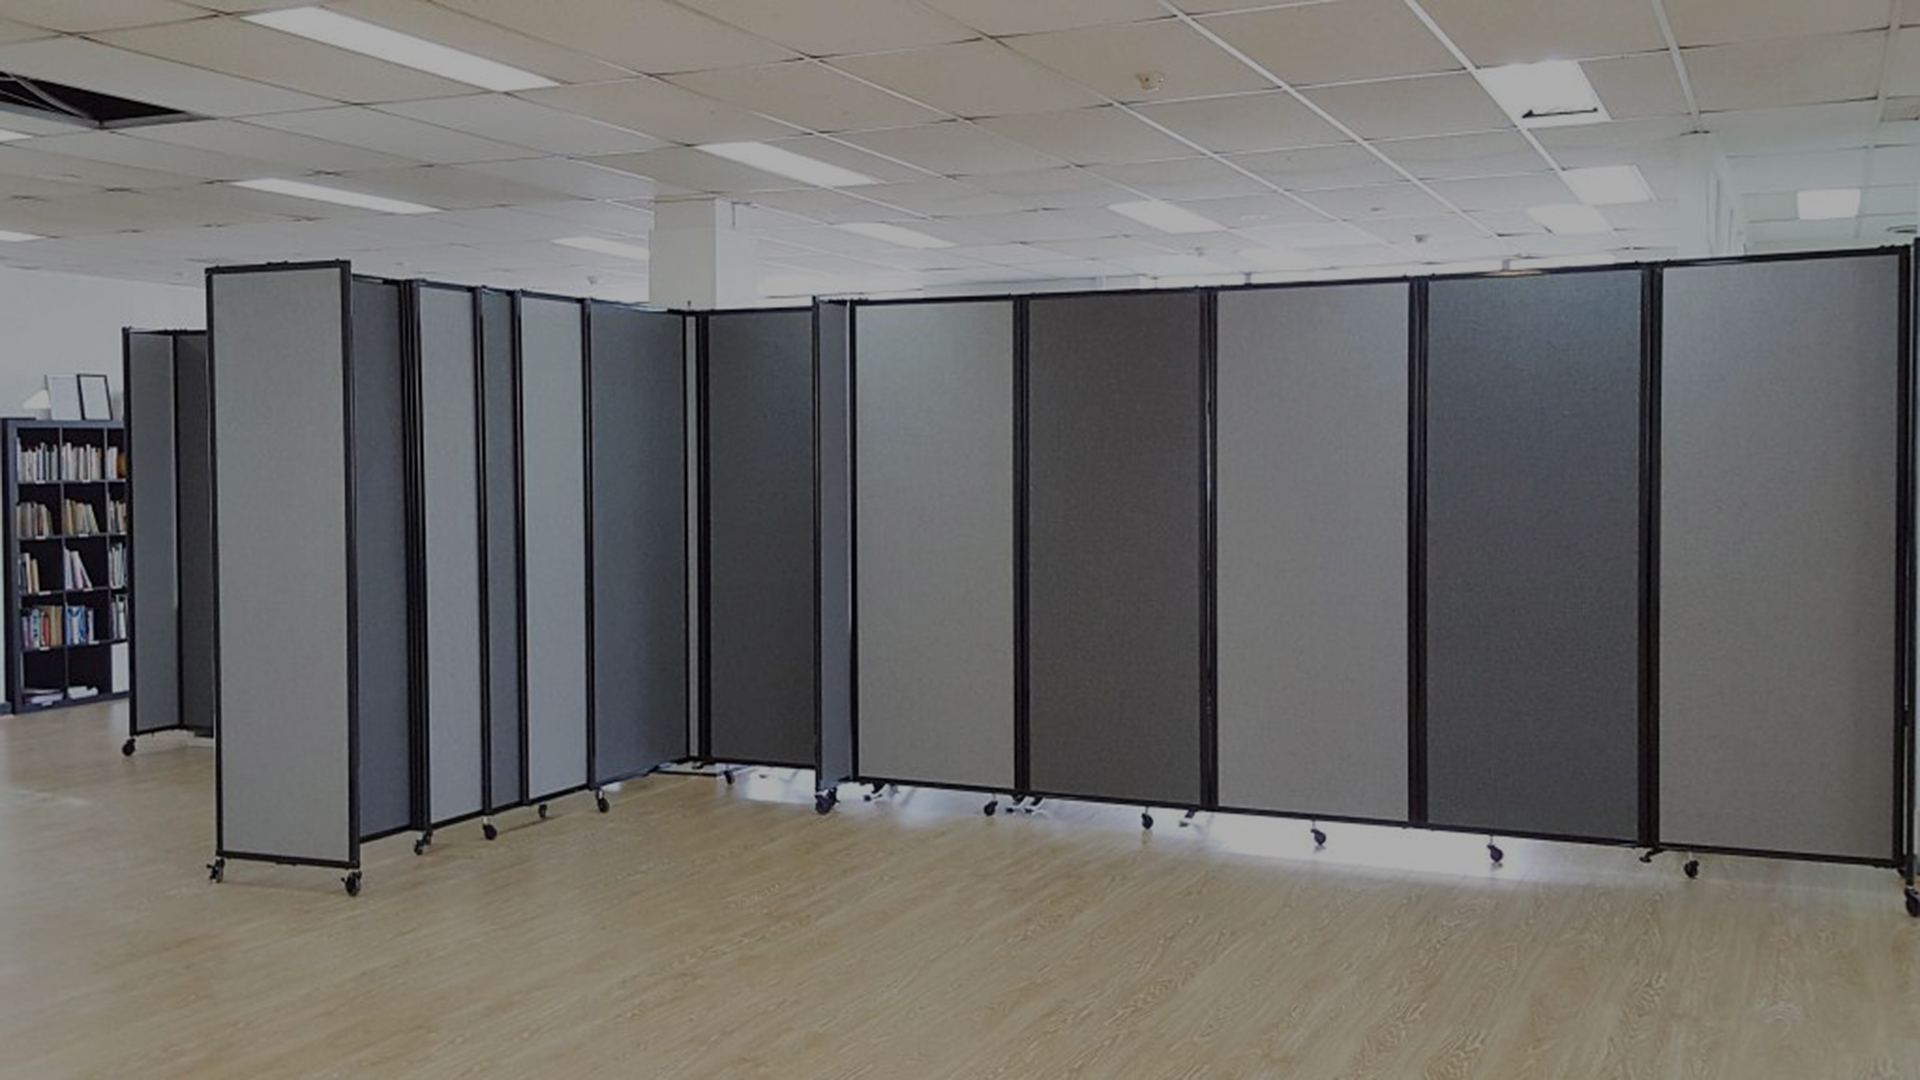 Room Dividers 360 and Straight-Wall, charcoal and cloud grey, in office space